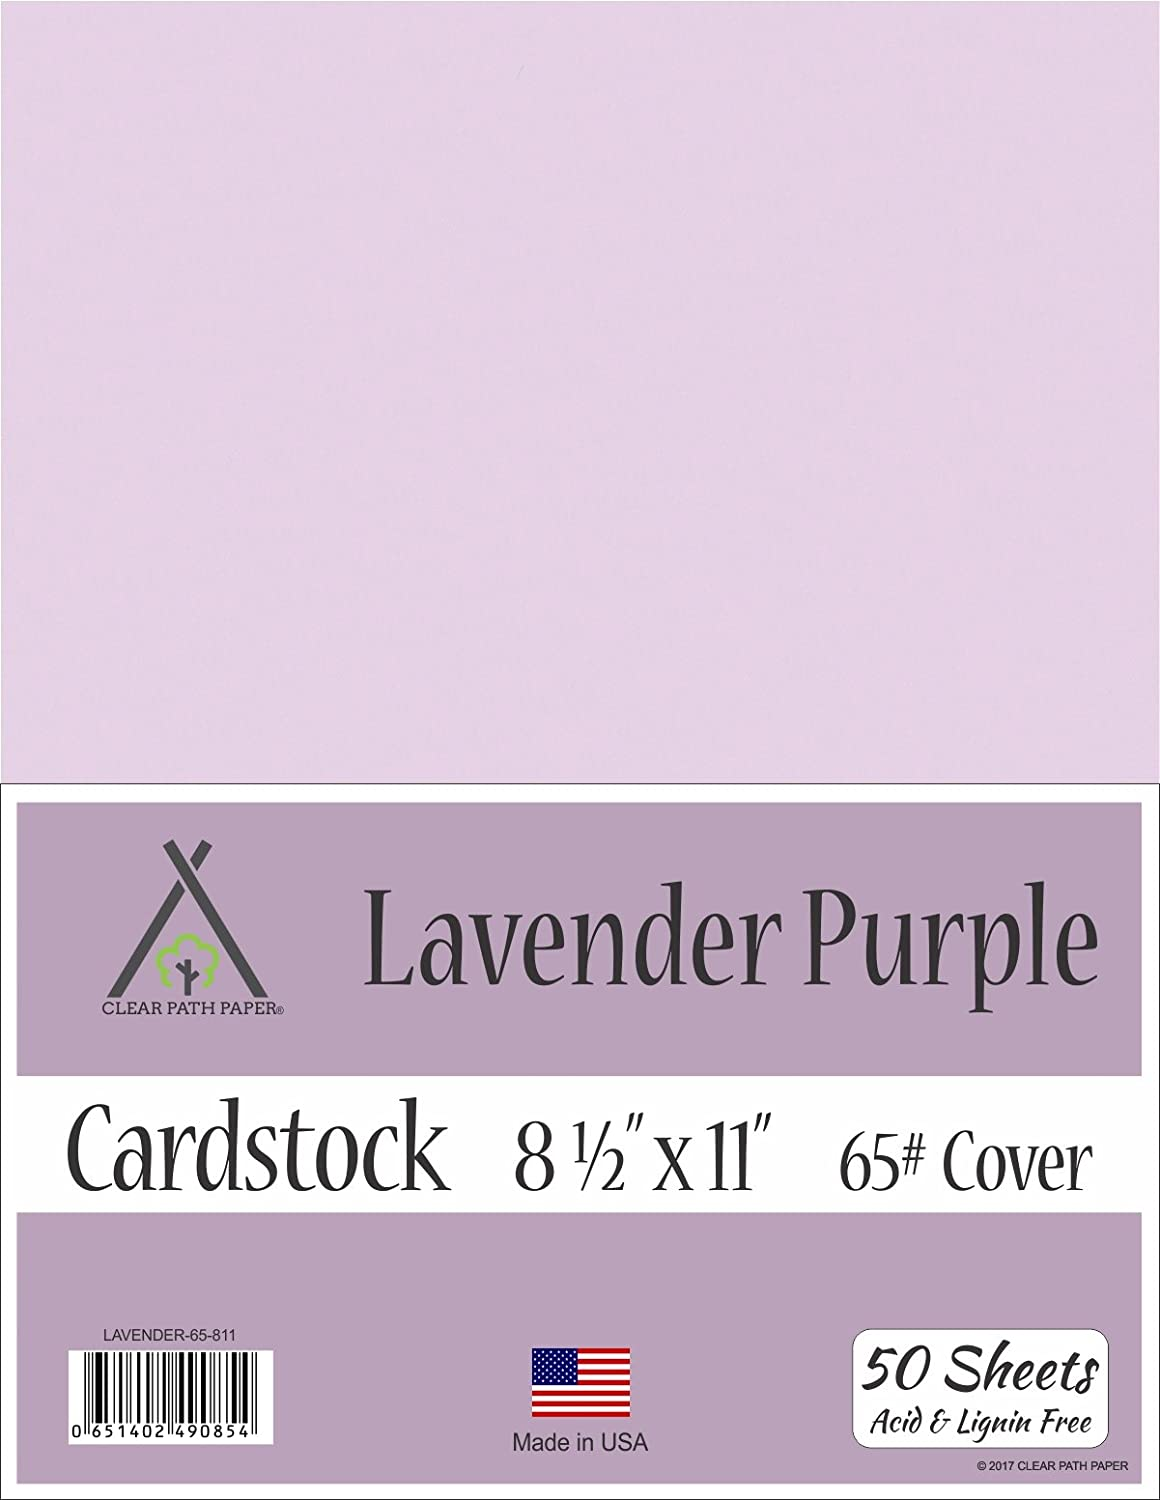 Lavender Purple Cardstock - 8.5 x 11 inch - 65Lb Cover - 50 Sheets Clear Path Paper 4336868141